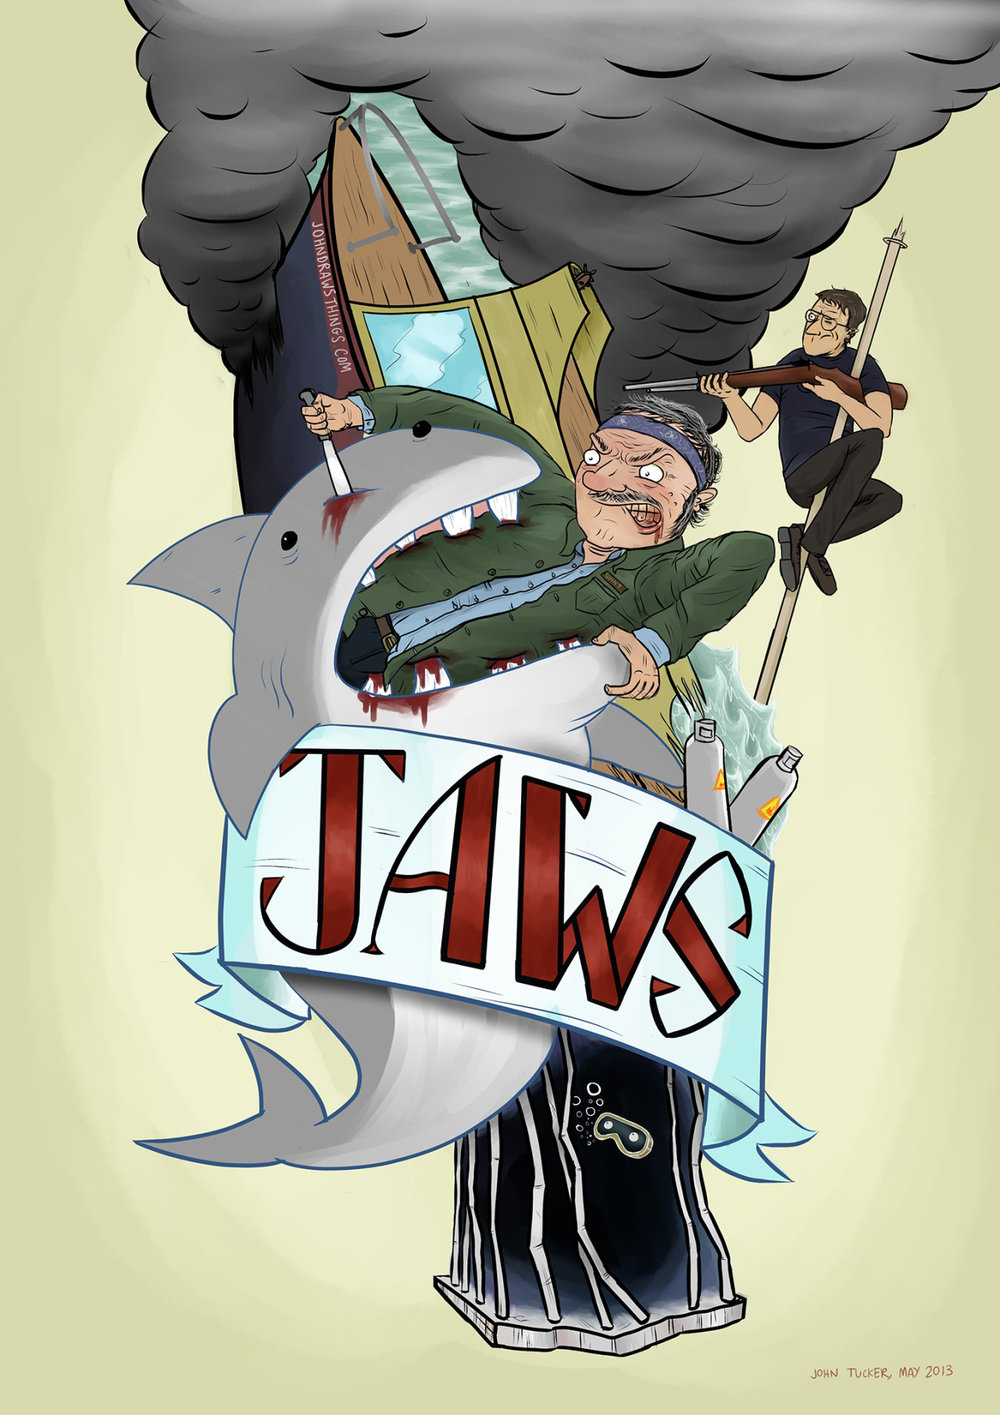 Jaws (2013), screening poster